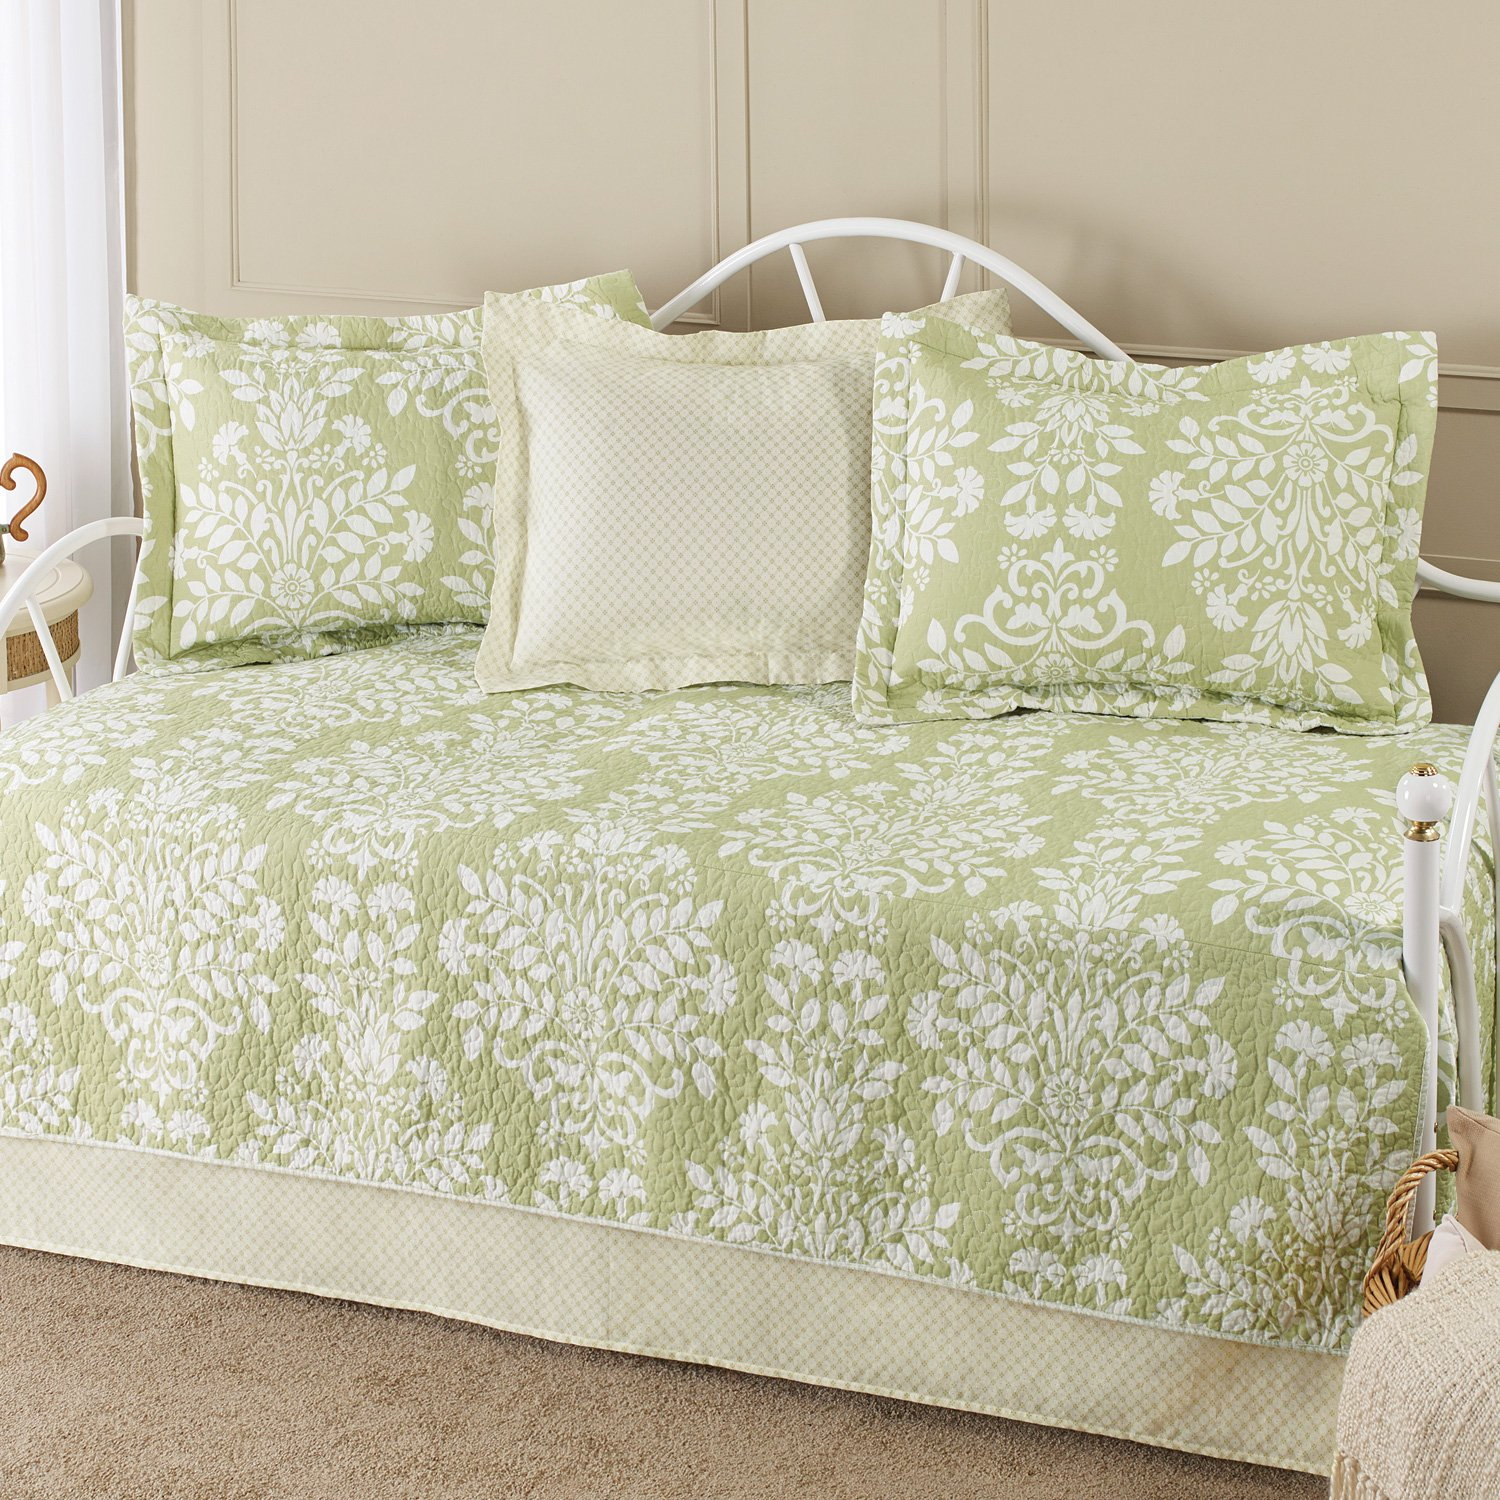 Laura Ashley 5-Piece Cotton Daybed/Quilt Twin Set, Green